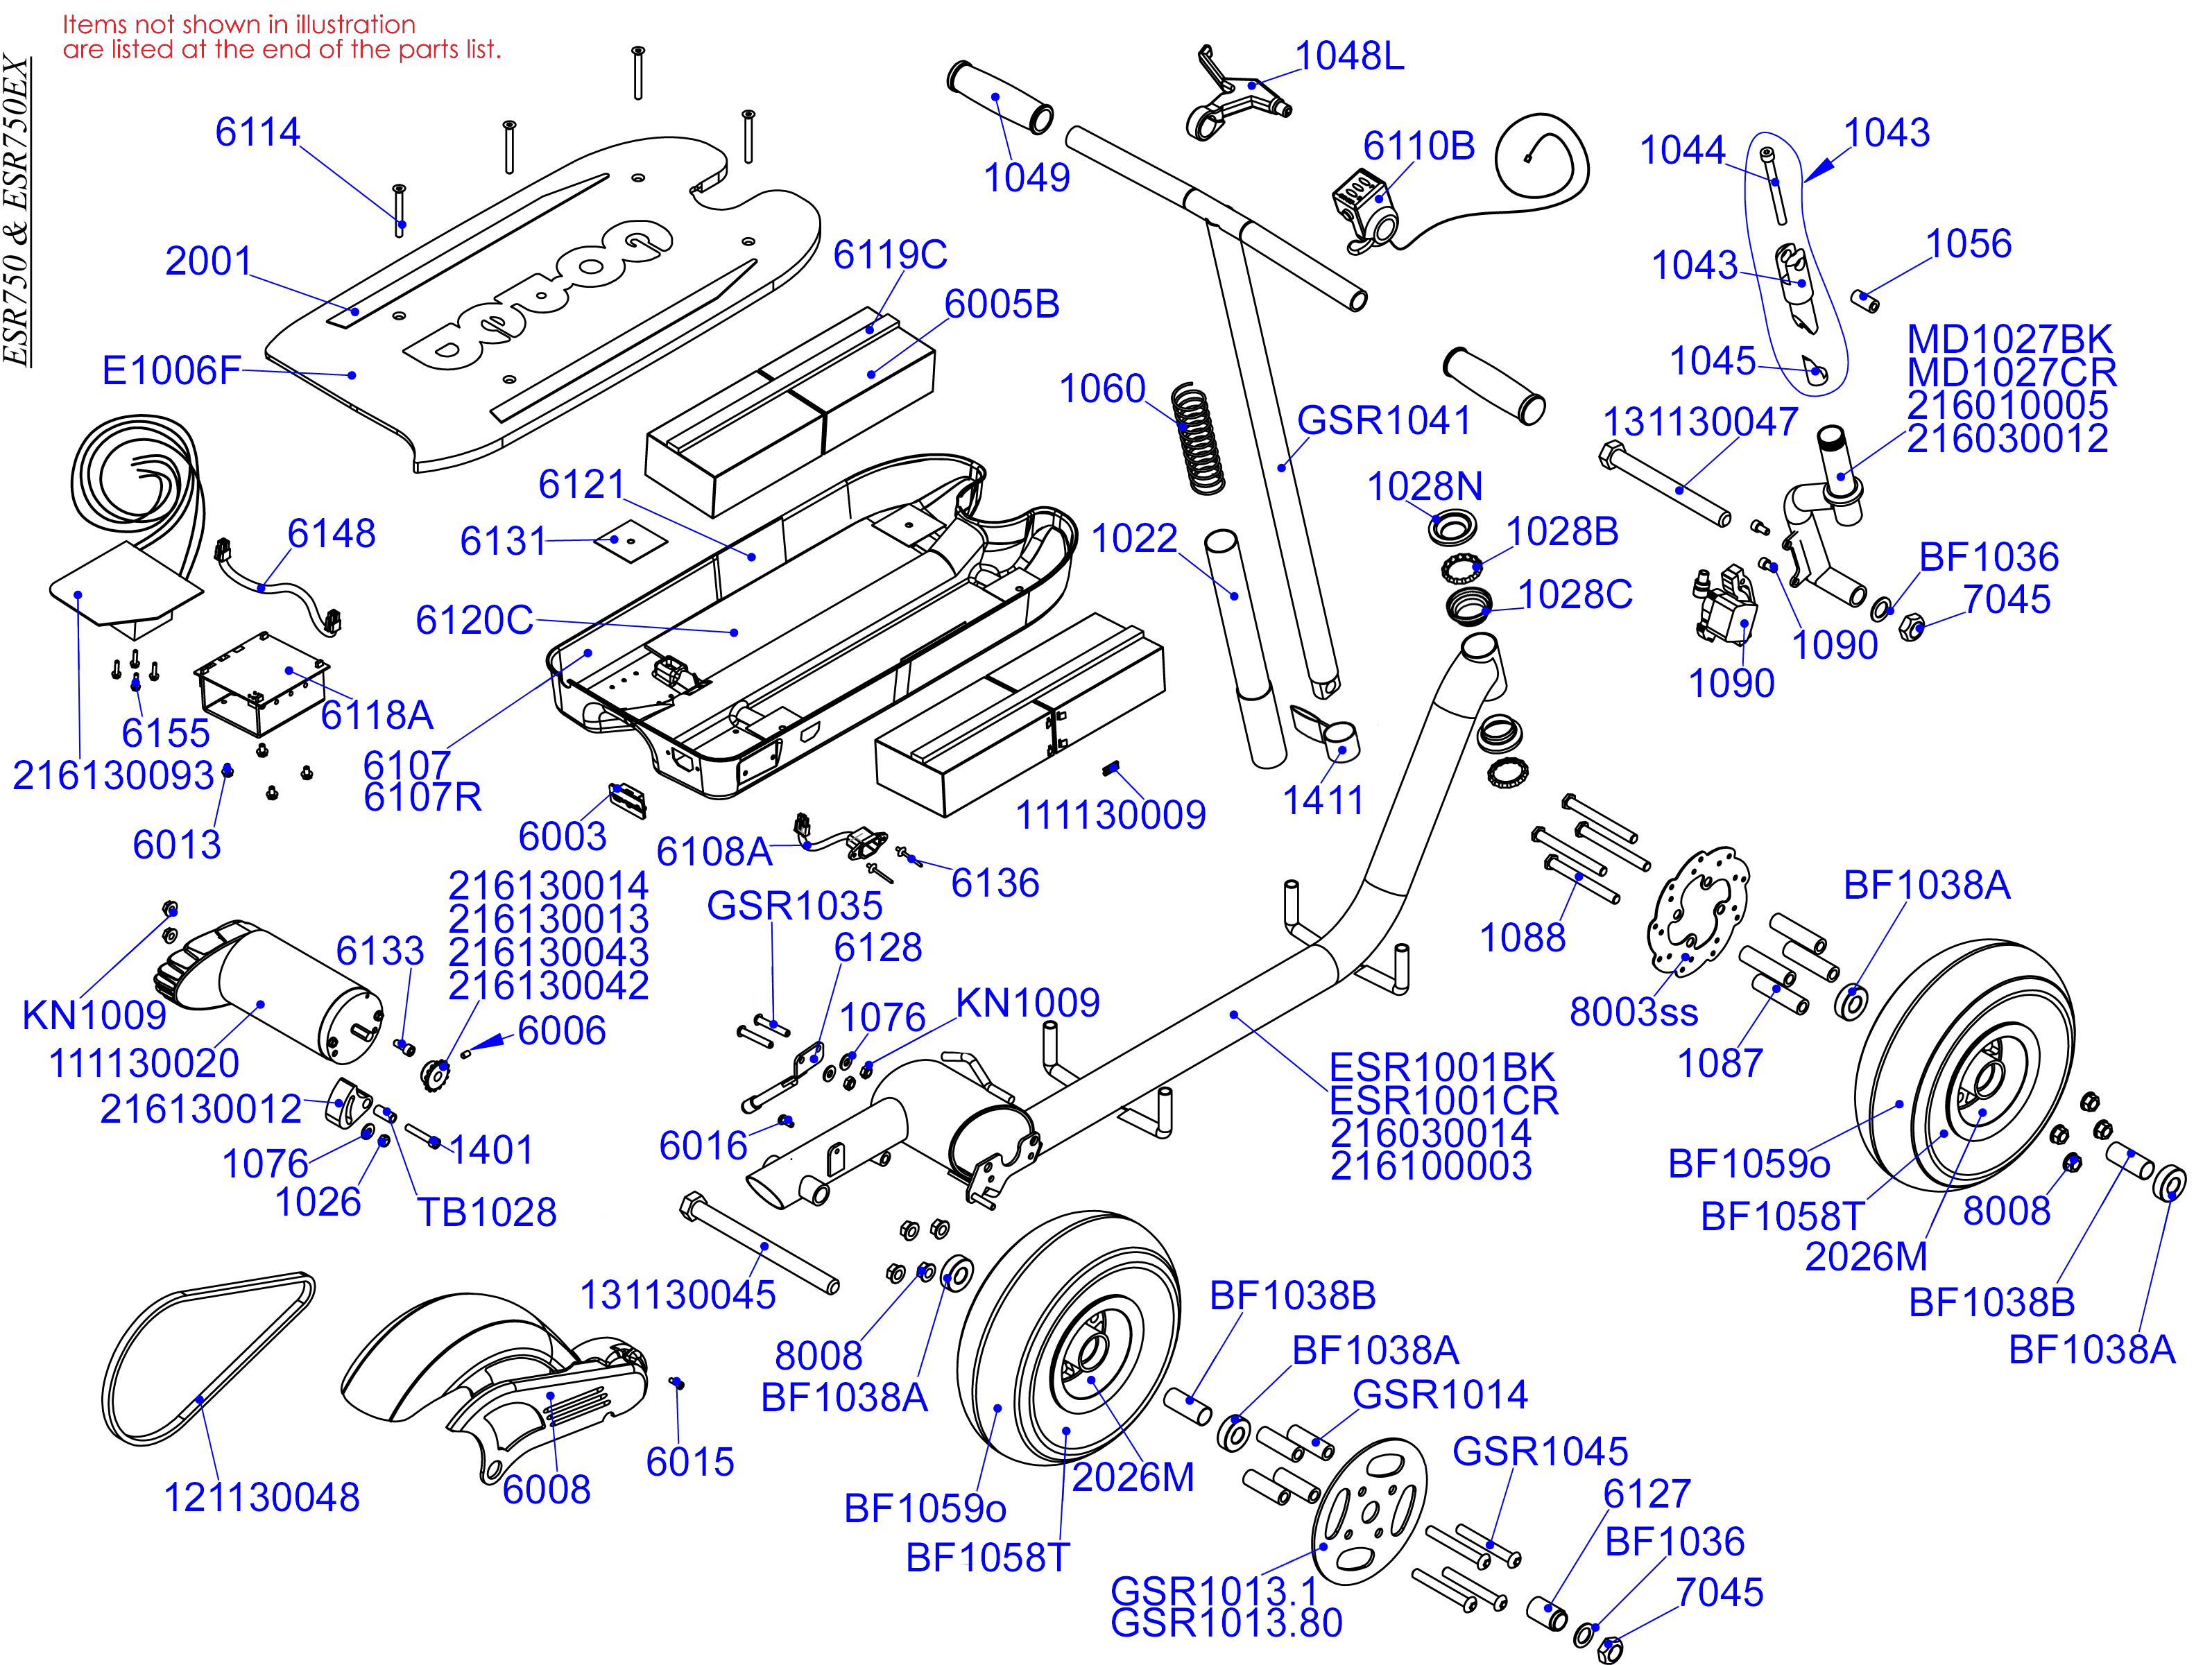 newesr750?t=1433273469 parts electric scooter parts esr 750 www goped com Electric Motor Wiring Diagram at readyjetset.co